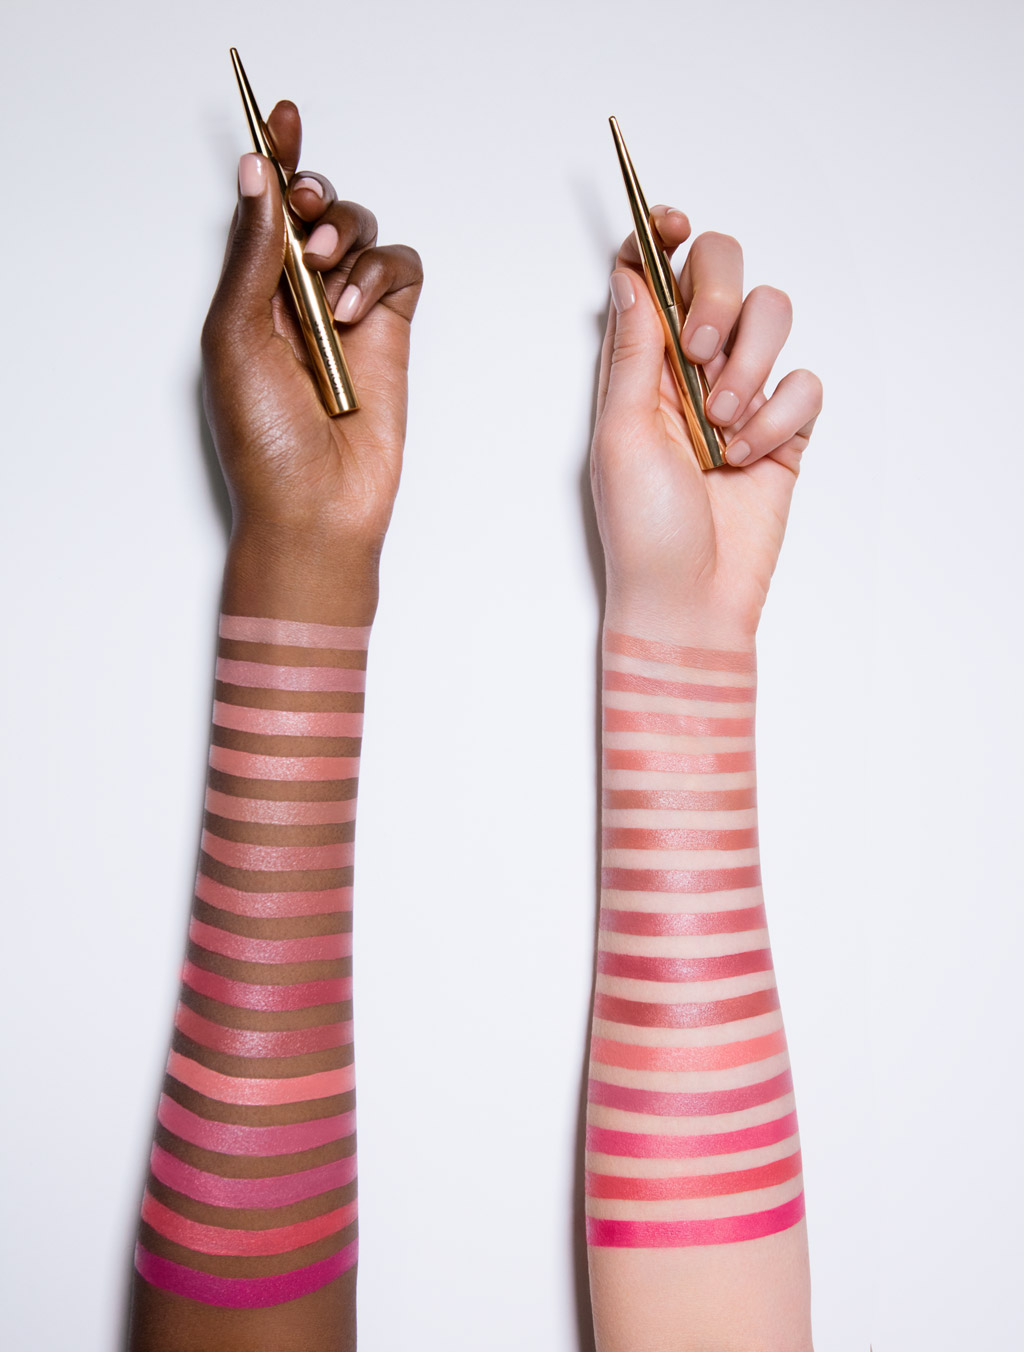 Avenue_Retouching_Hourglass_Arm_swatch_1